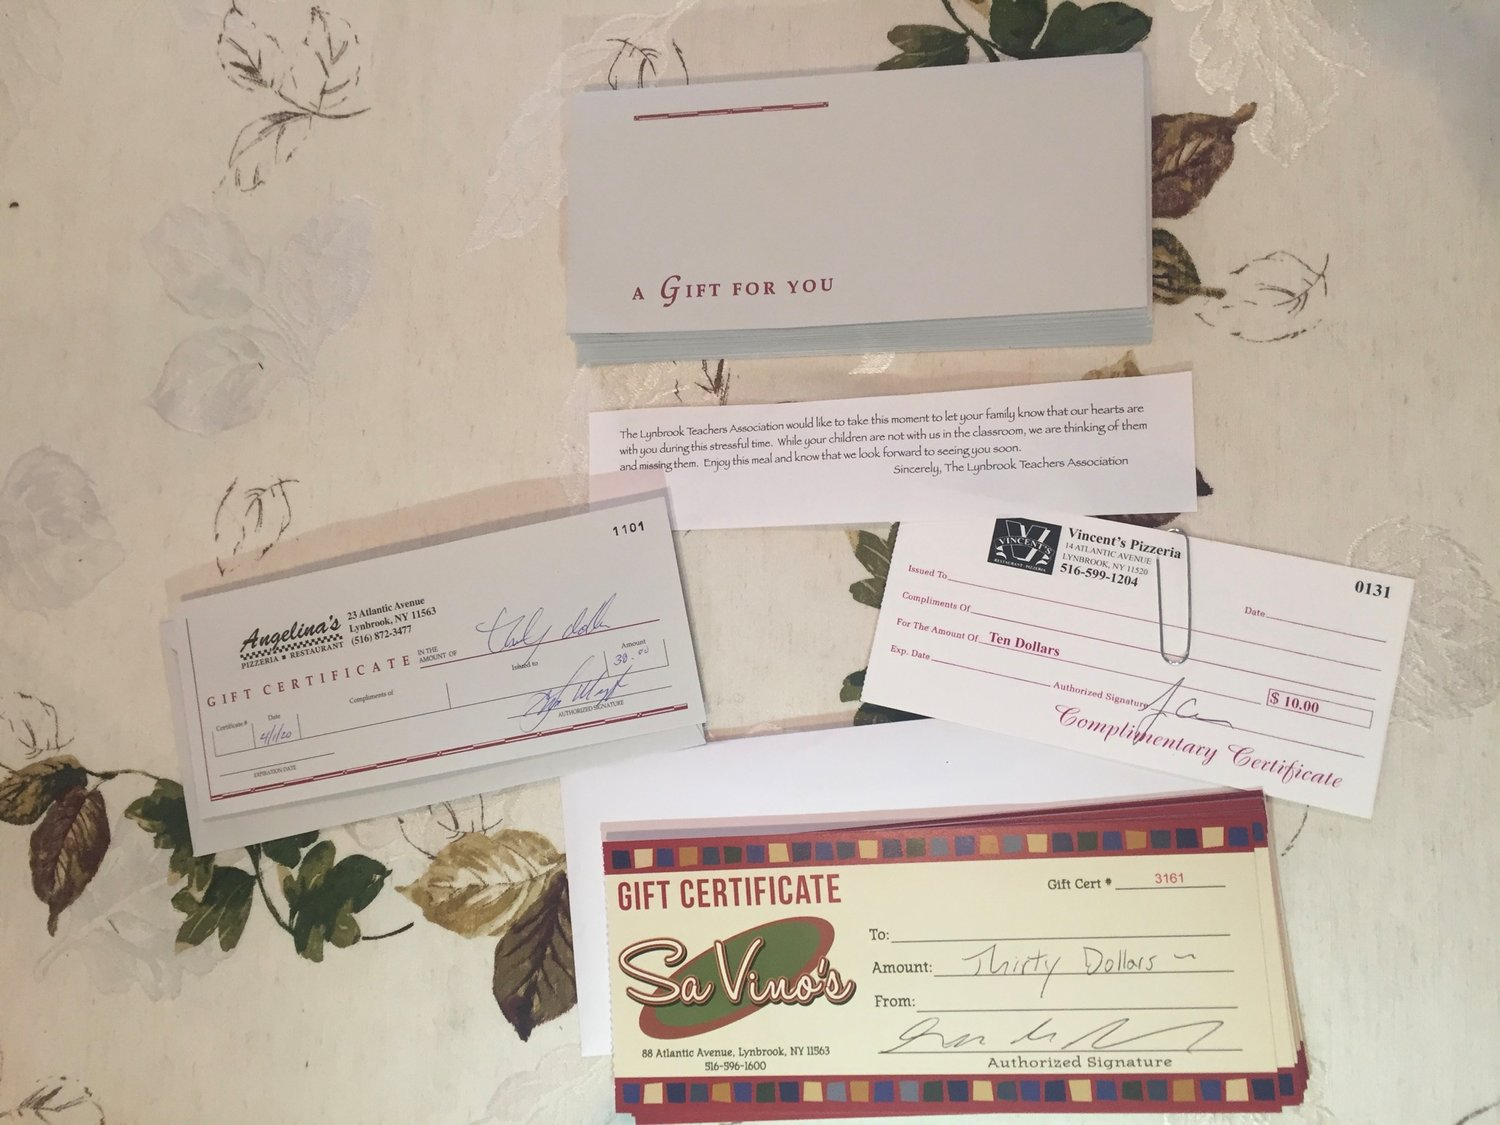 The gift cards came from three Lynbrook businesses, Savino's Restaurant & Wine Bar, Vincent's Pizzeria and Restaurant and Angelina's Pizzeria and Restaurant.